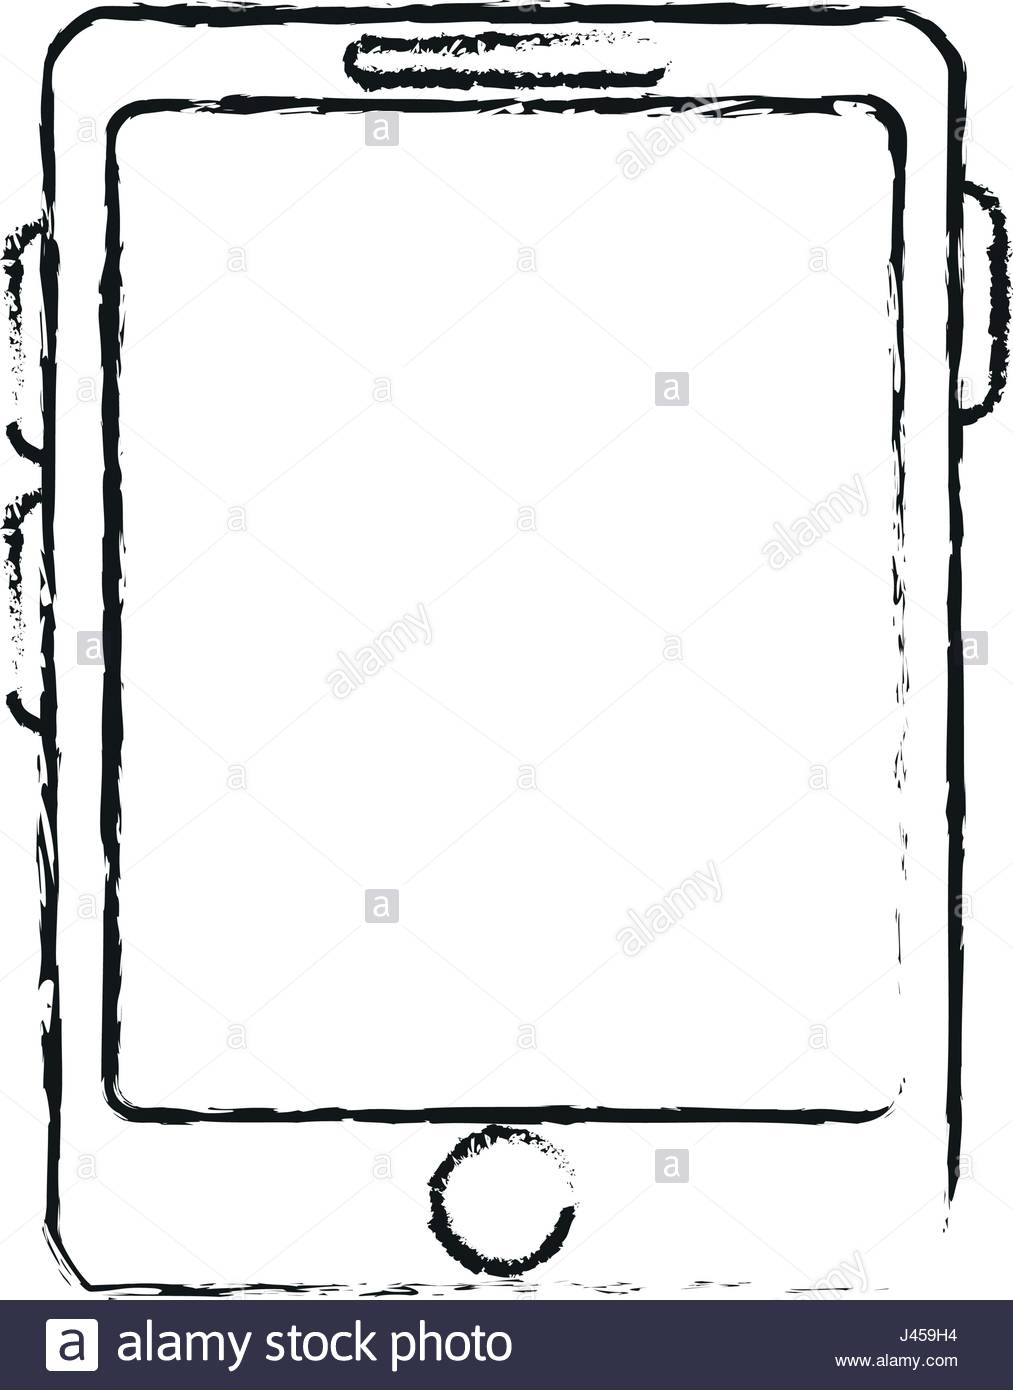 1013x1390 Blurred Silhouette Cartoon Tablet Technology Device Stock Vector